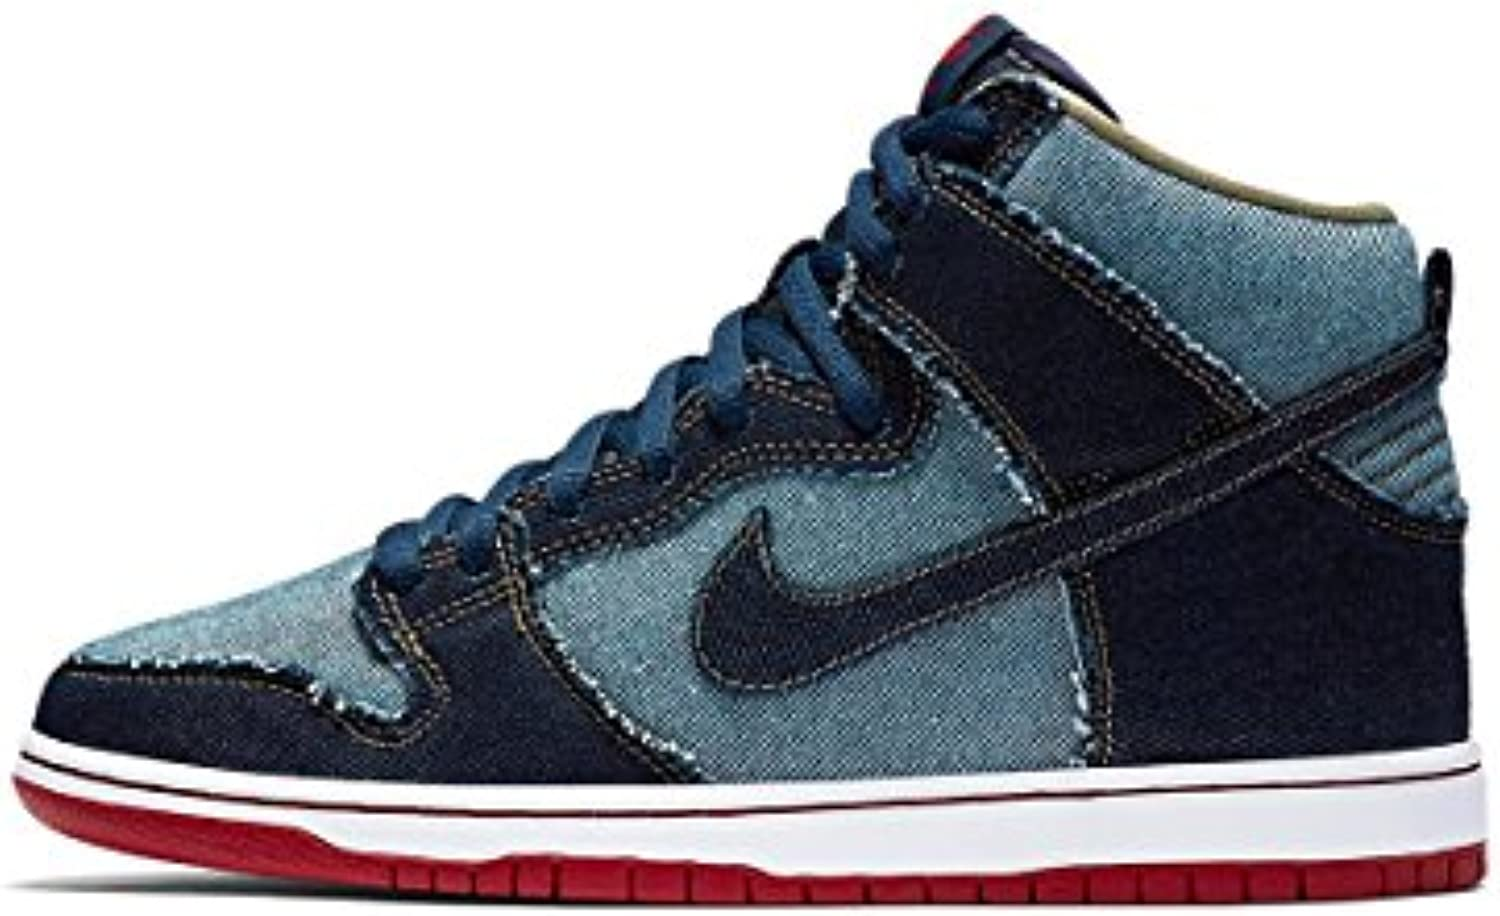 SB DUNK Skateboarding High Pro Reese Forbes Midnight Navy EUR40/UK6/US7/25CM.